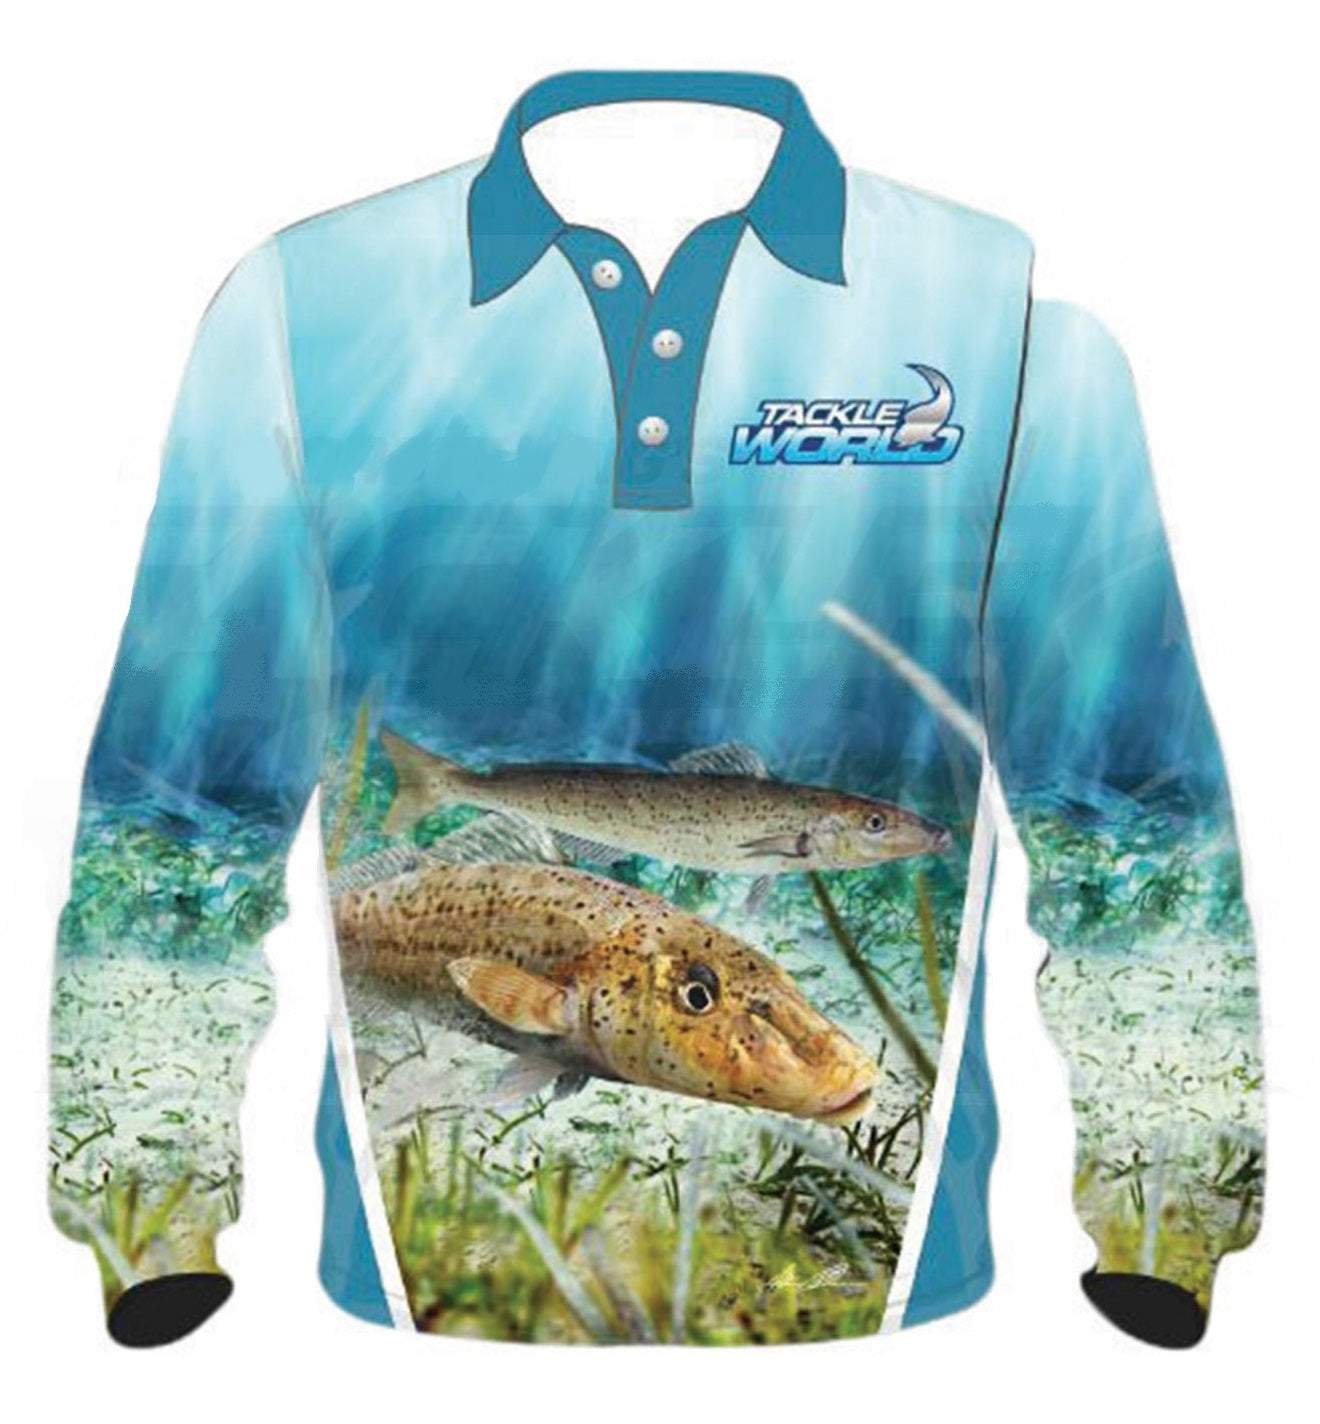 Tackle World Whiting Kids Long Sleeve Fishing Shirt Jersey